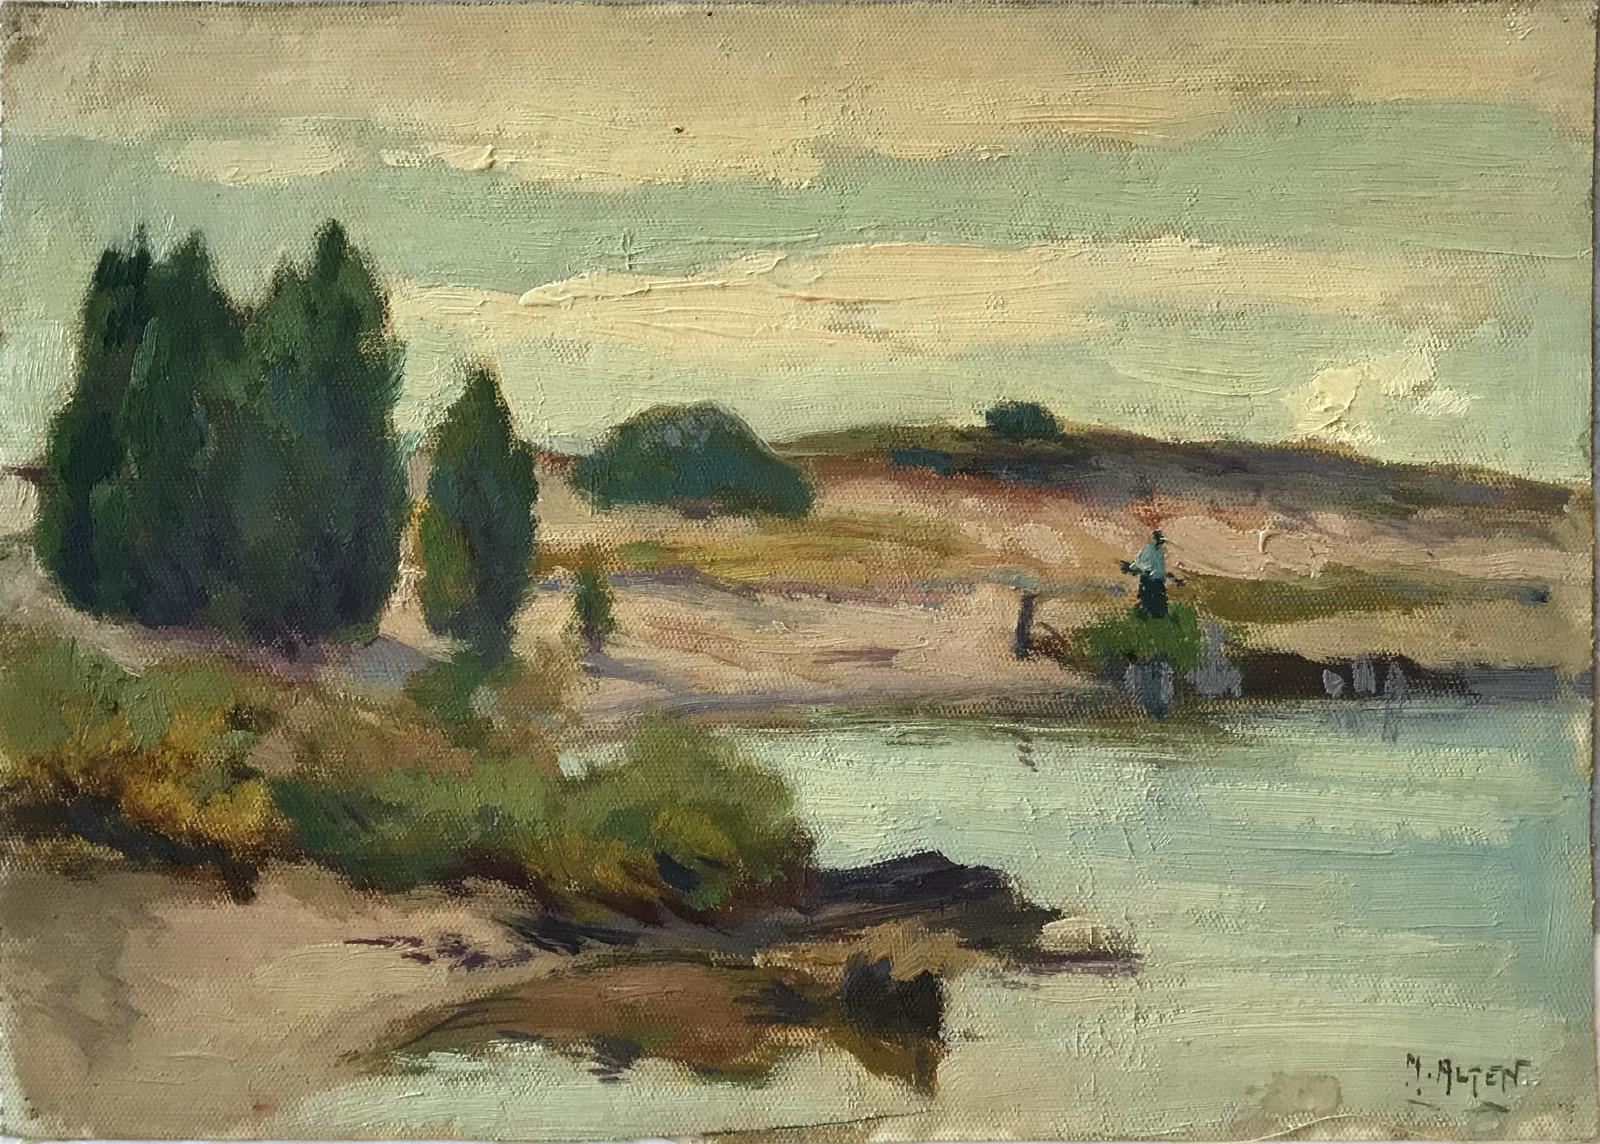 Oil on canvas image of a sandy shoreline with a few green shrubs and trees.